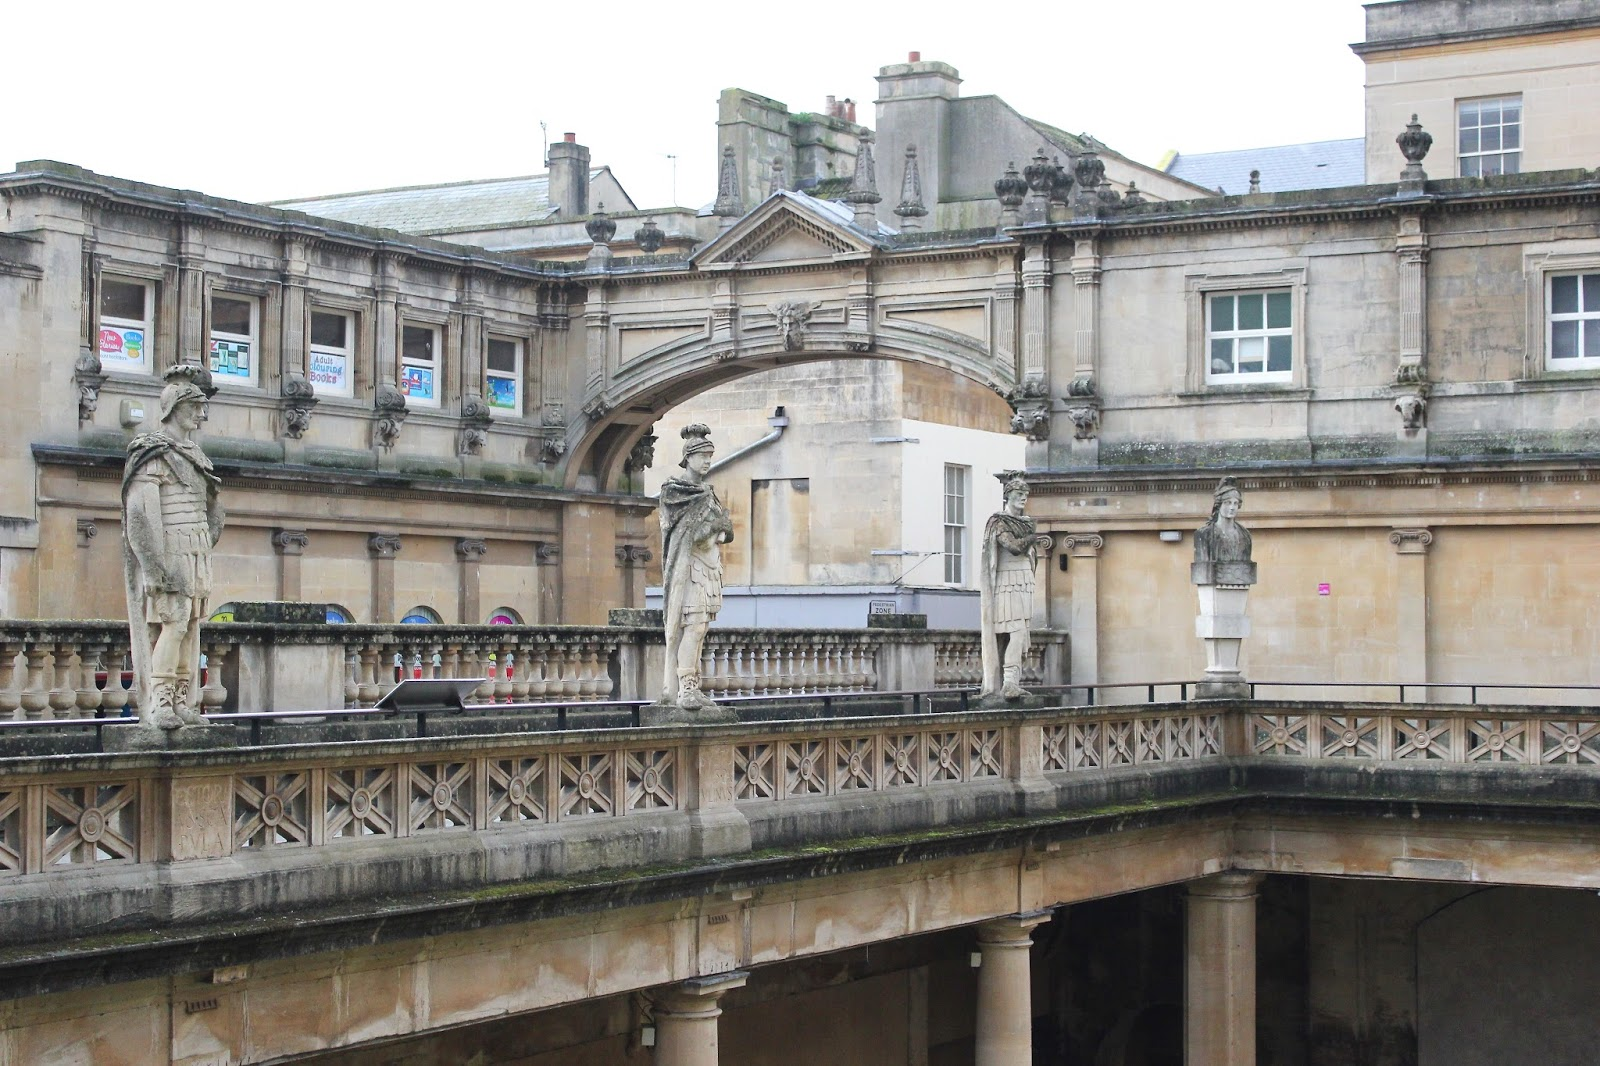 travel guide about Bath, talking about what to do, where to eat, and where to stay. Including the Roman Baths, Bath Abbey and Gray's Boutique B&B